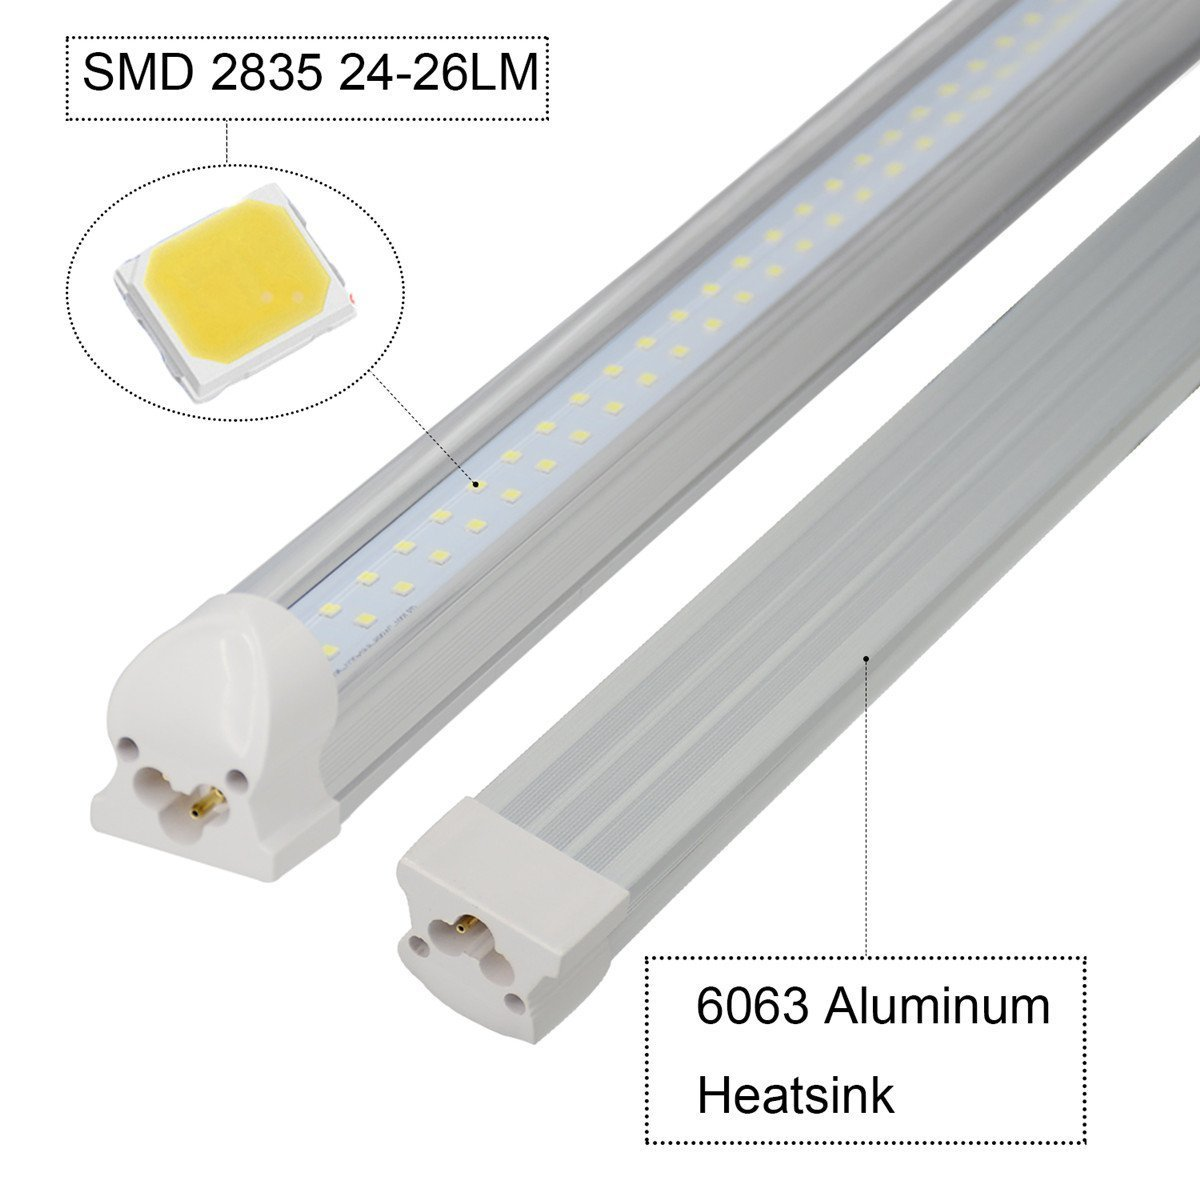 (US STOCK)CNSUNWAY 8ft T8 LED Tube, 96'' Integrated Dual Row Lighting Bulbs, 72W(150W Equivalent), 6000K Cool White Clean Lens Light, Work Without Ballast (200) by CNSUNWAY LIGHTING (Image #5)